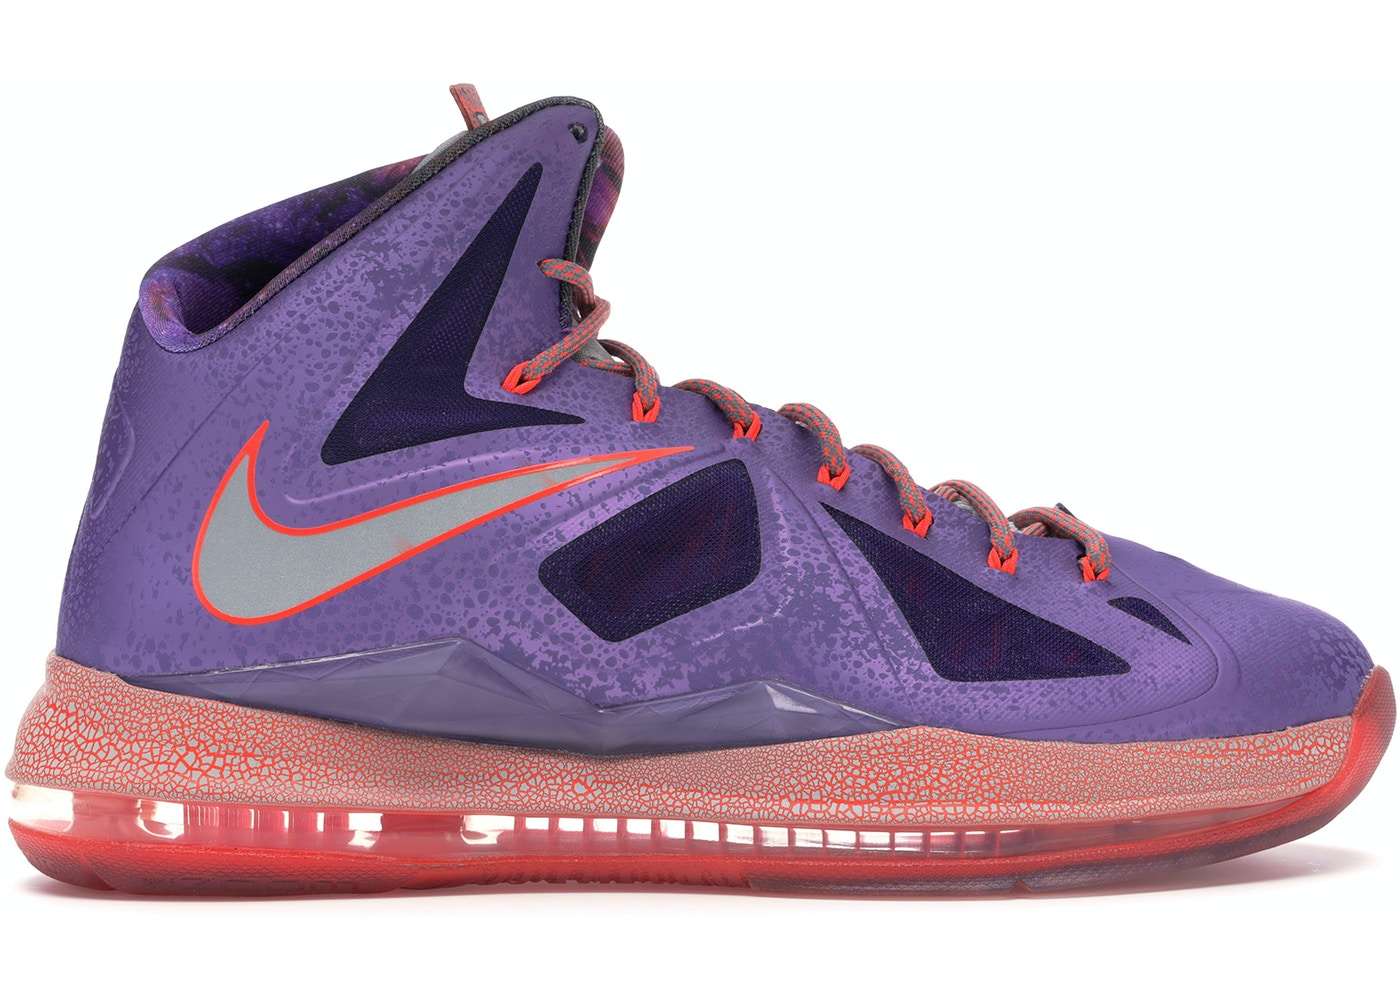 competitive price d11d2 b1def Buy Nike LeBron 10 Shoes   Deadstock Sneakers